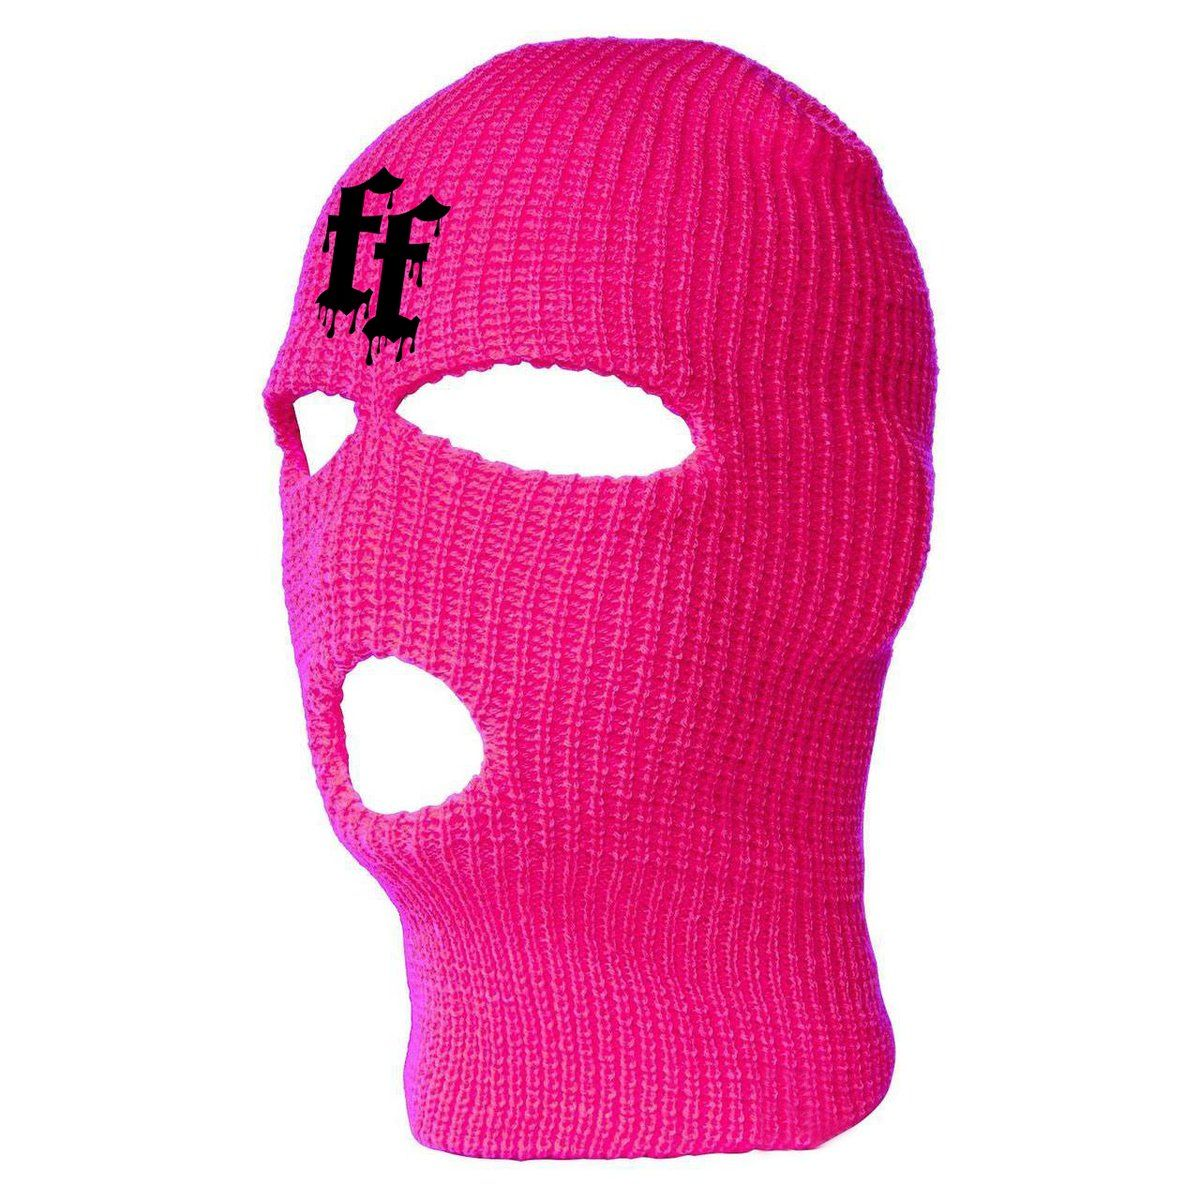 Pin By Kayla Chieco On Boo In 2020 Ski Mask Hot Pink Face Mask